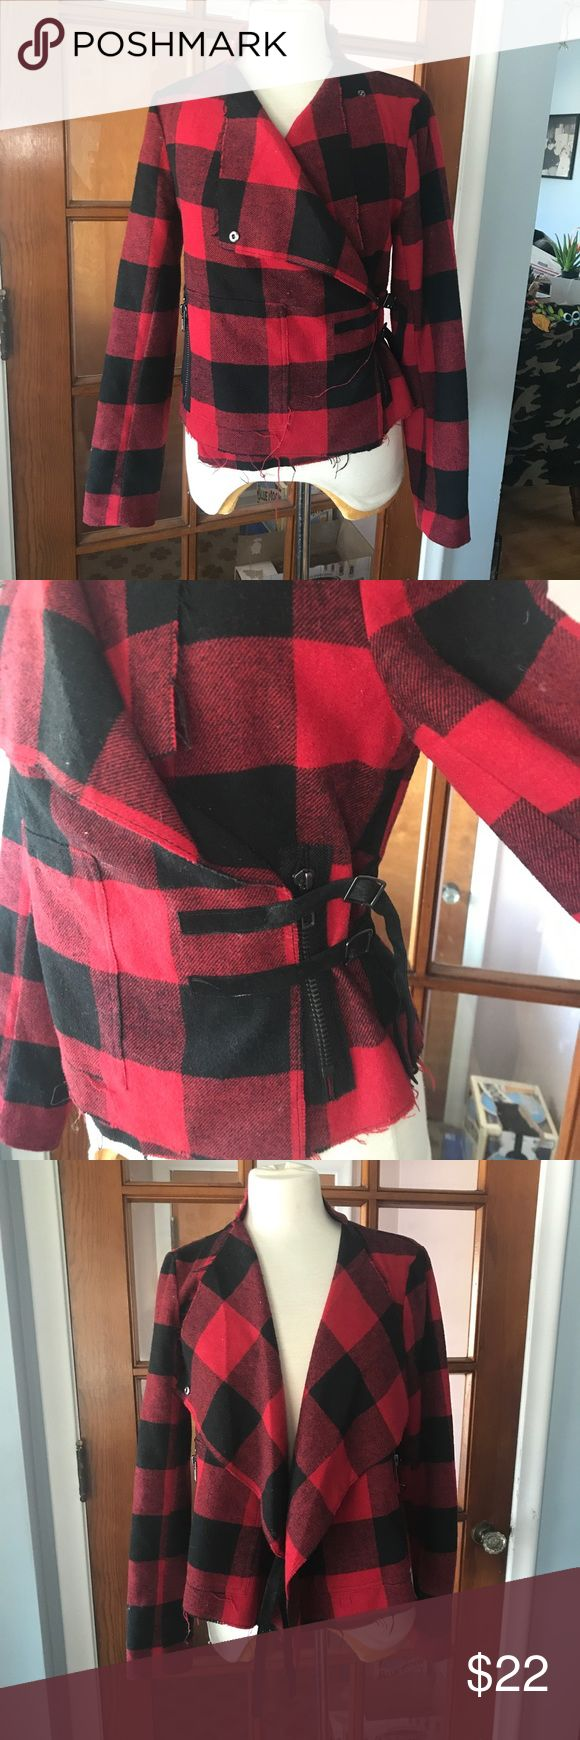 BB Dakota Jacket Buffalo plaid jacket. Can be worn closed with double strap closure or open. Interior liner was cut to make it more comfortable when wearing, it's not detectable when on. Back seams have been reinforced. (Both flaws are pictured). BB Dakota Jackets & Coats